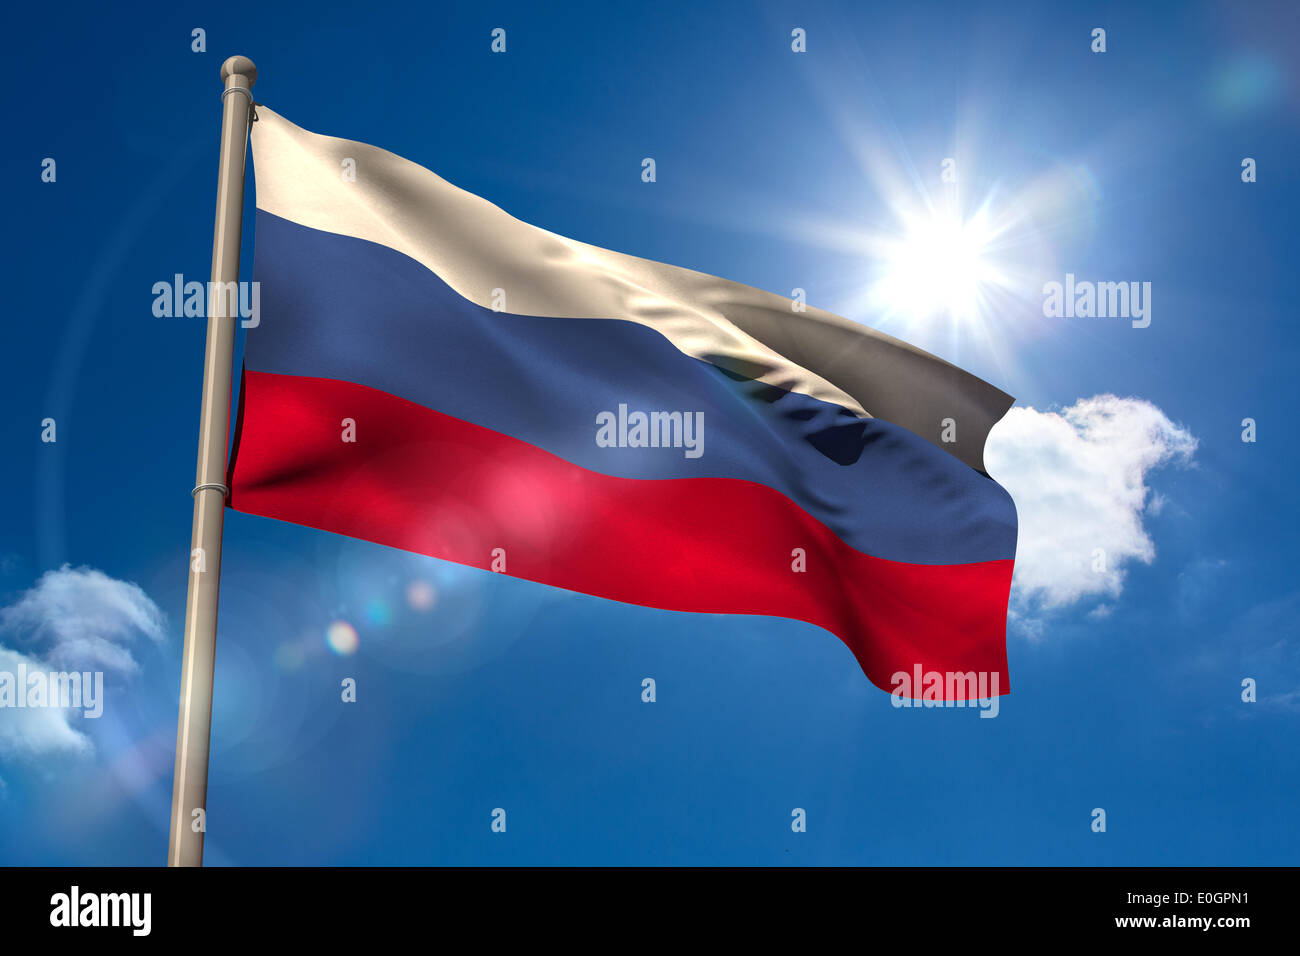 Russia national flag on flagpole - Stock Image